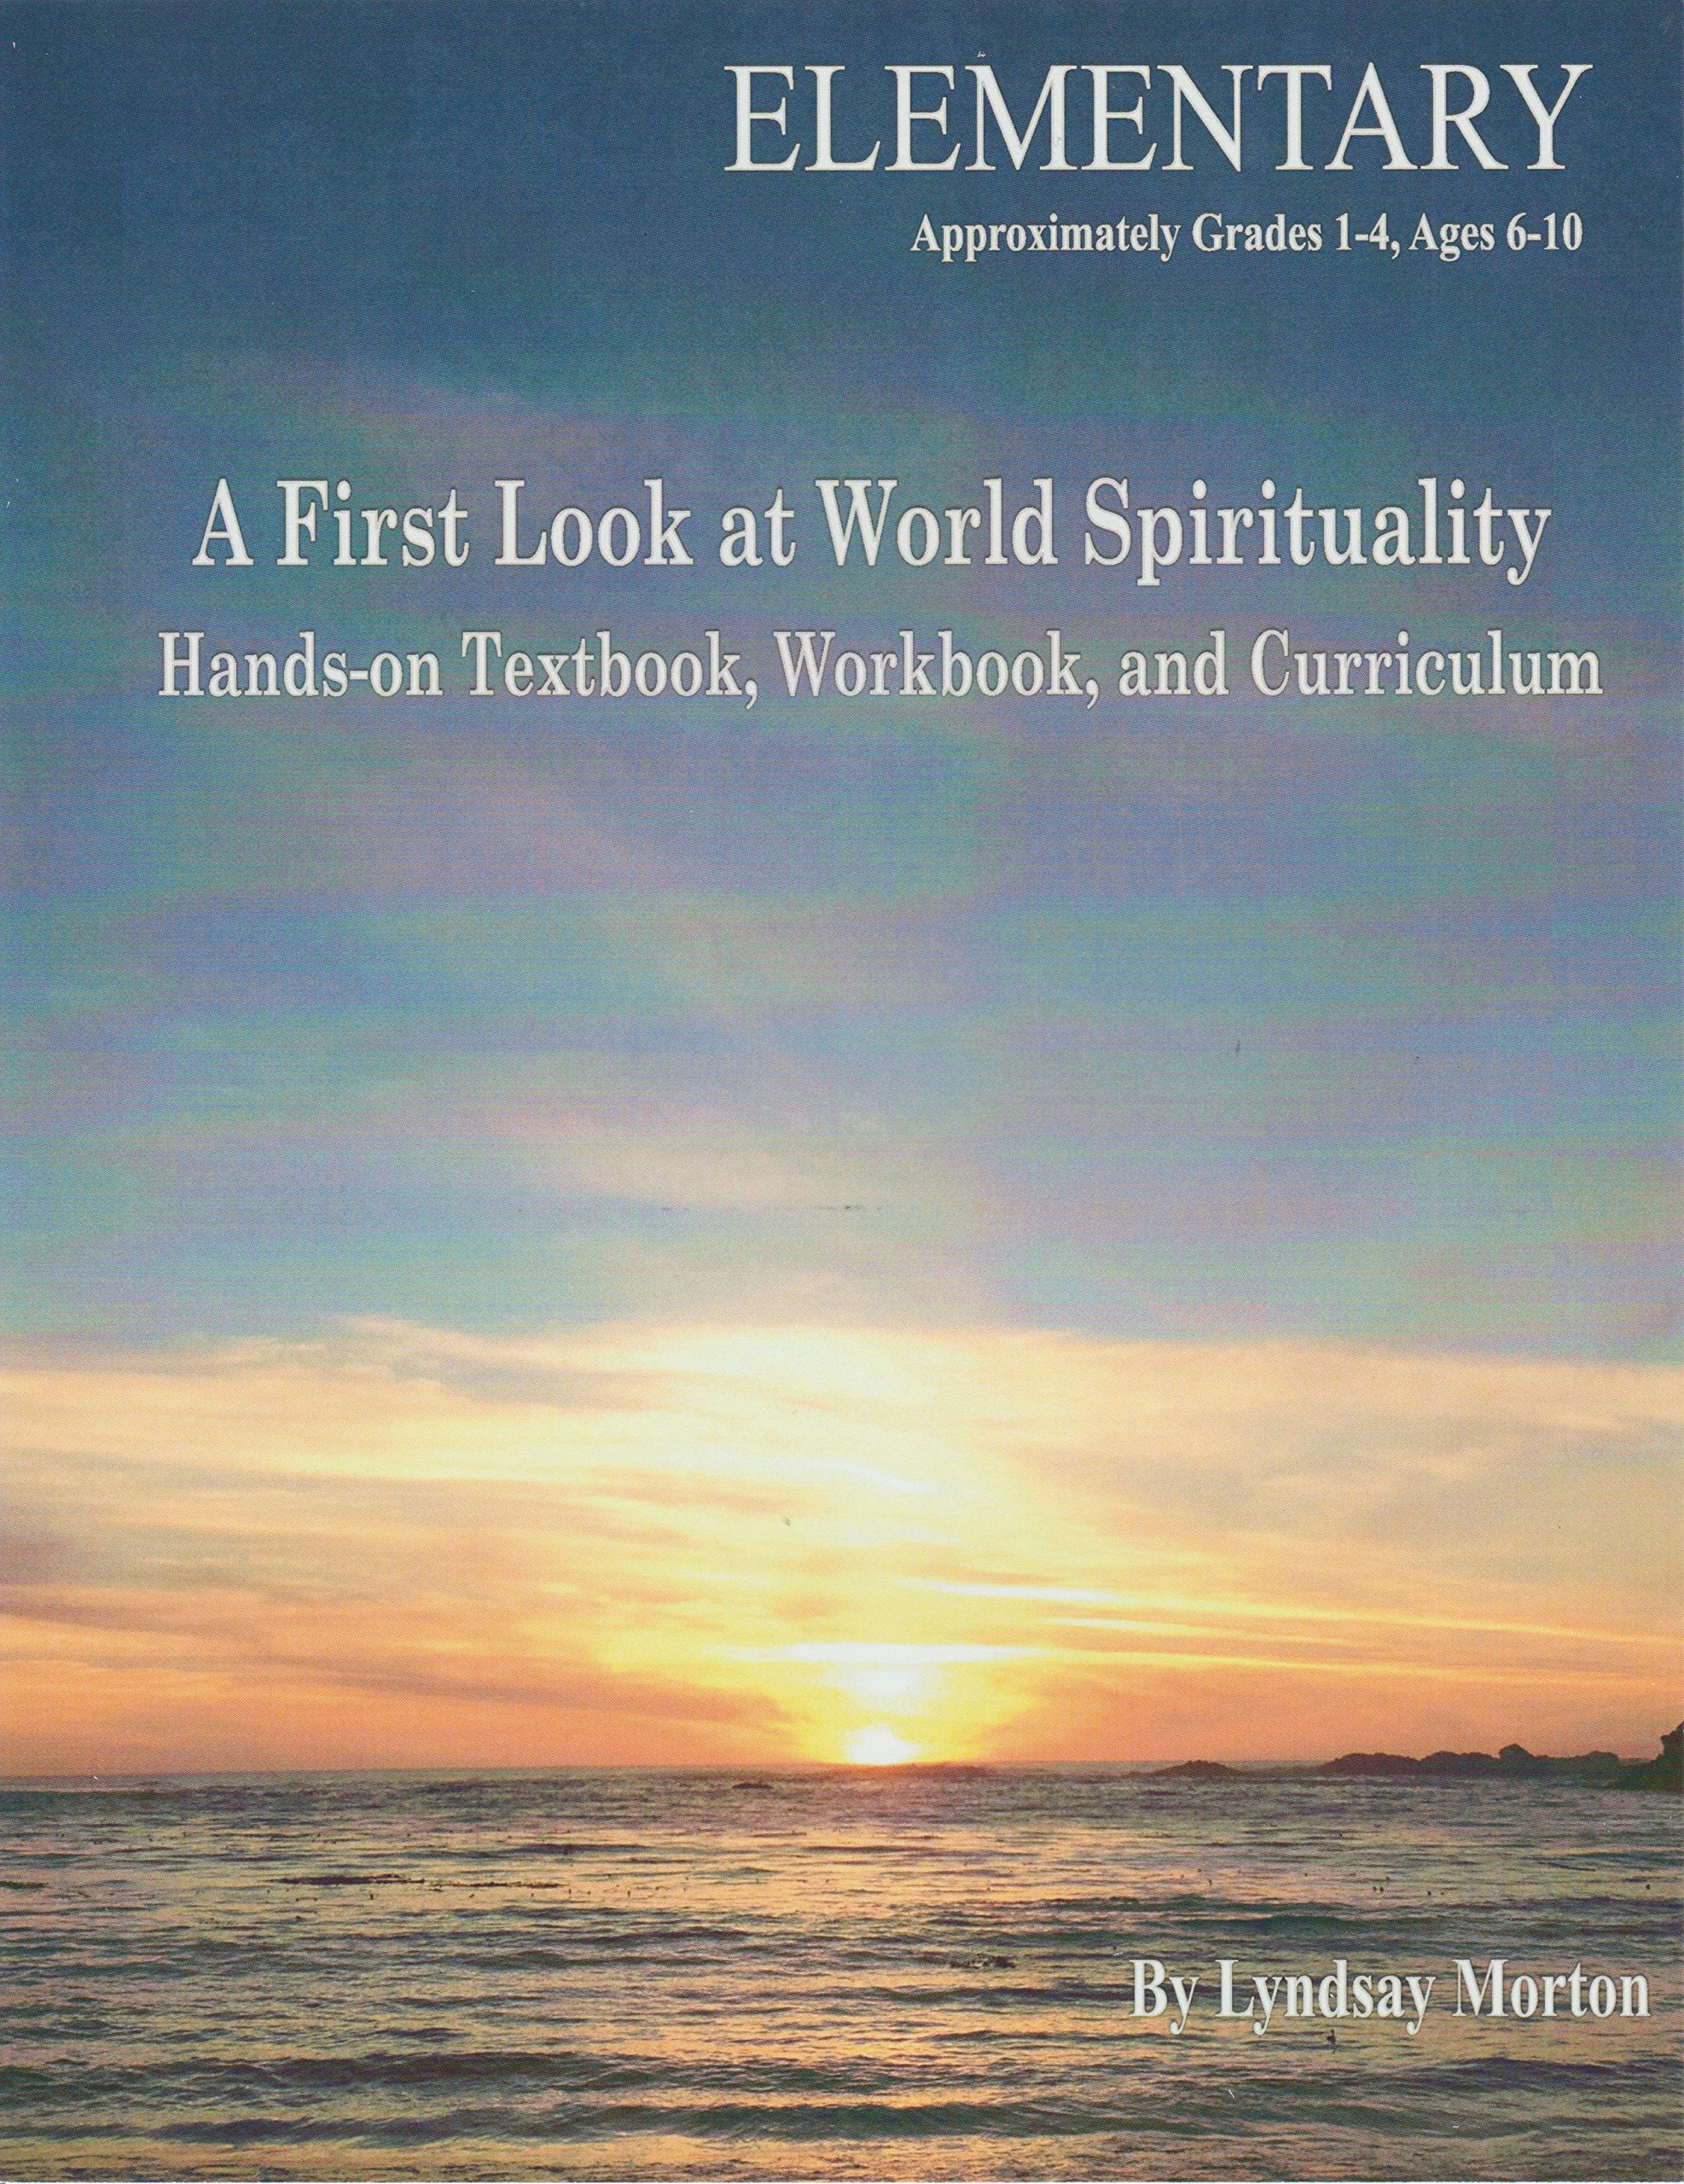 Download A First Look at World Spirituality: Hands-on Textbook, Workbook, and Curriculum; Elementary PDF Text fb2 book